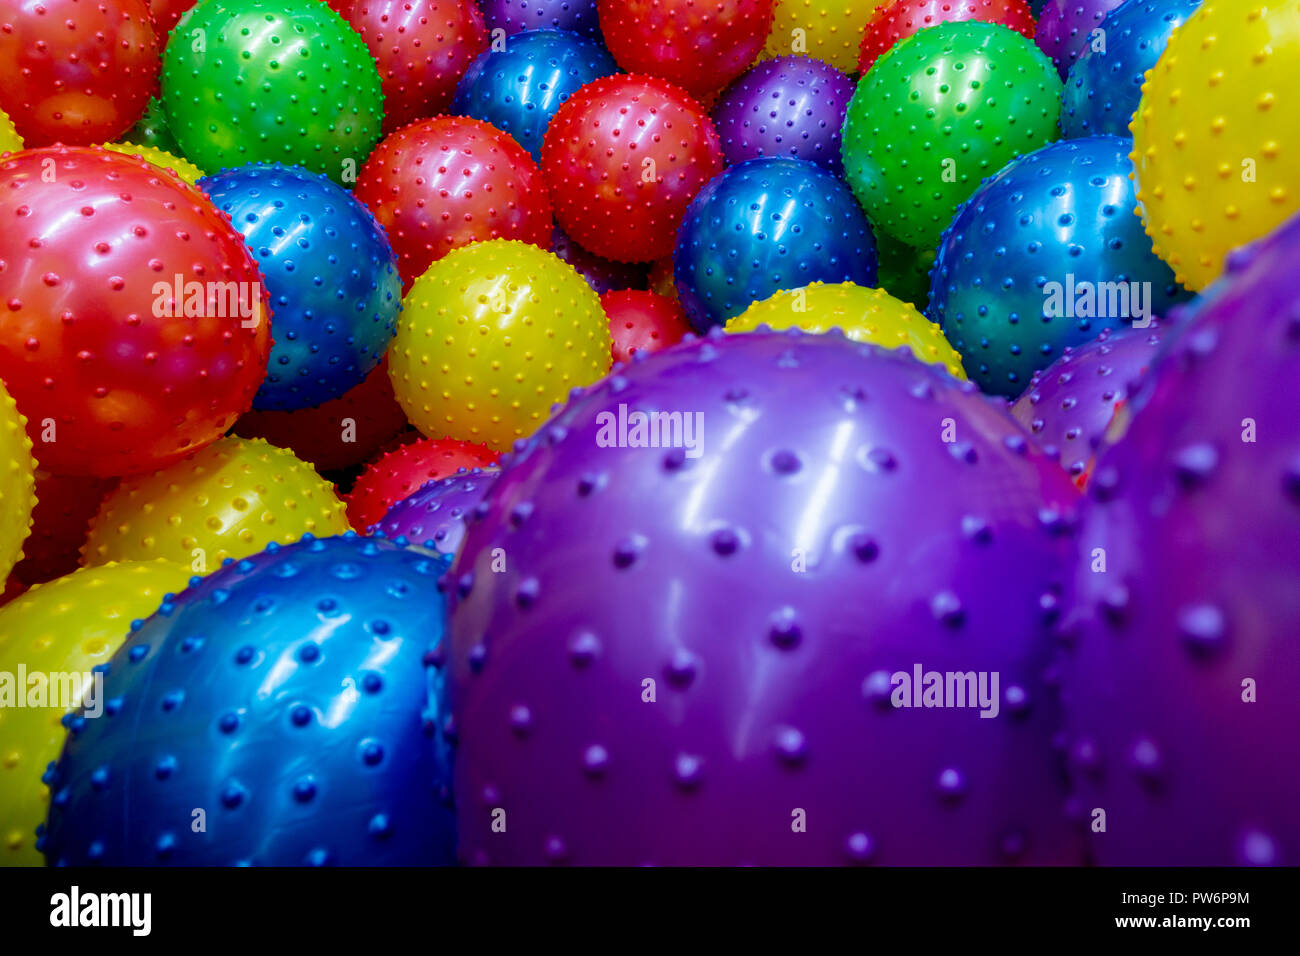 many kick balls together in one area wall to wall - Stock Image